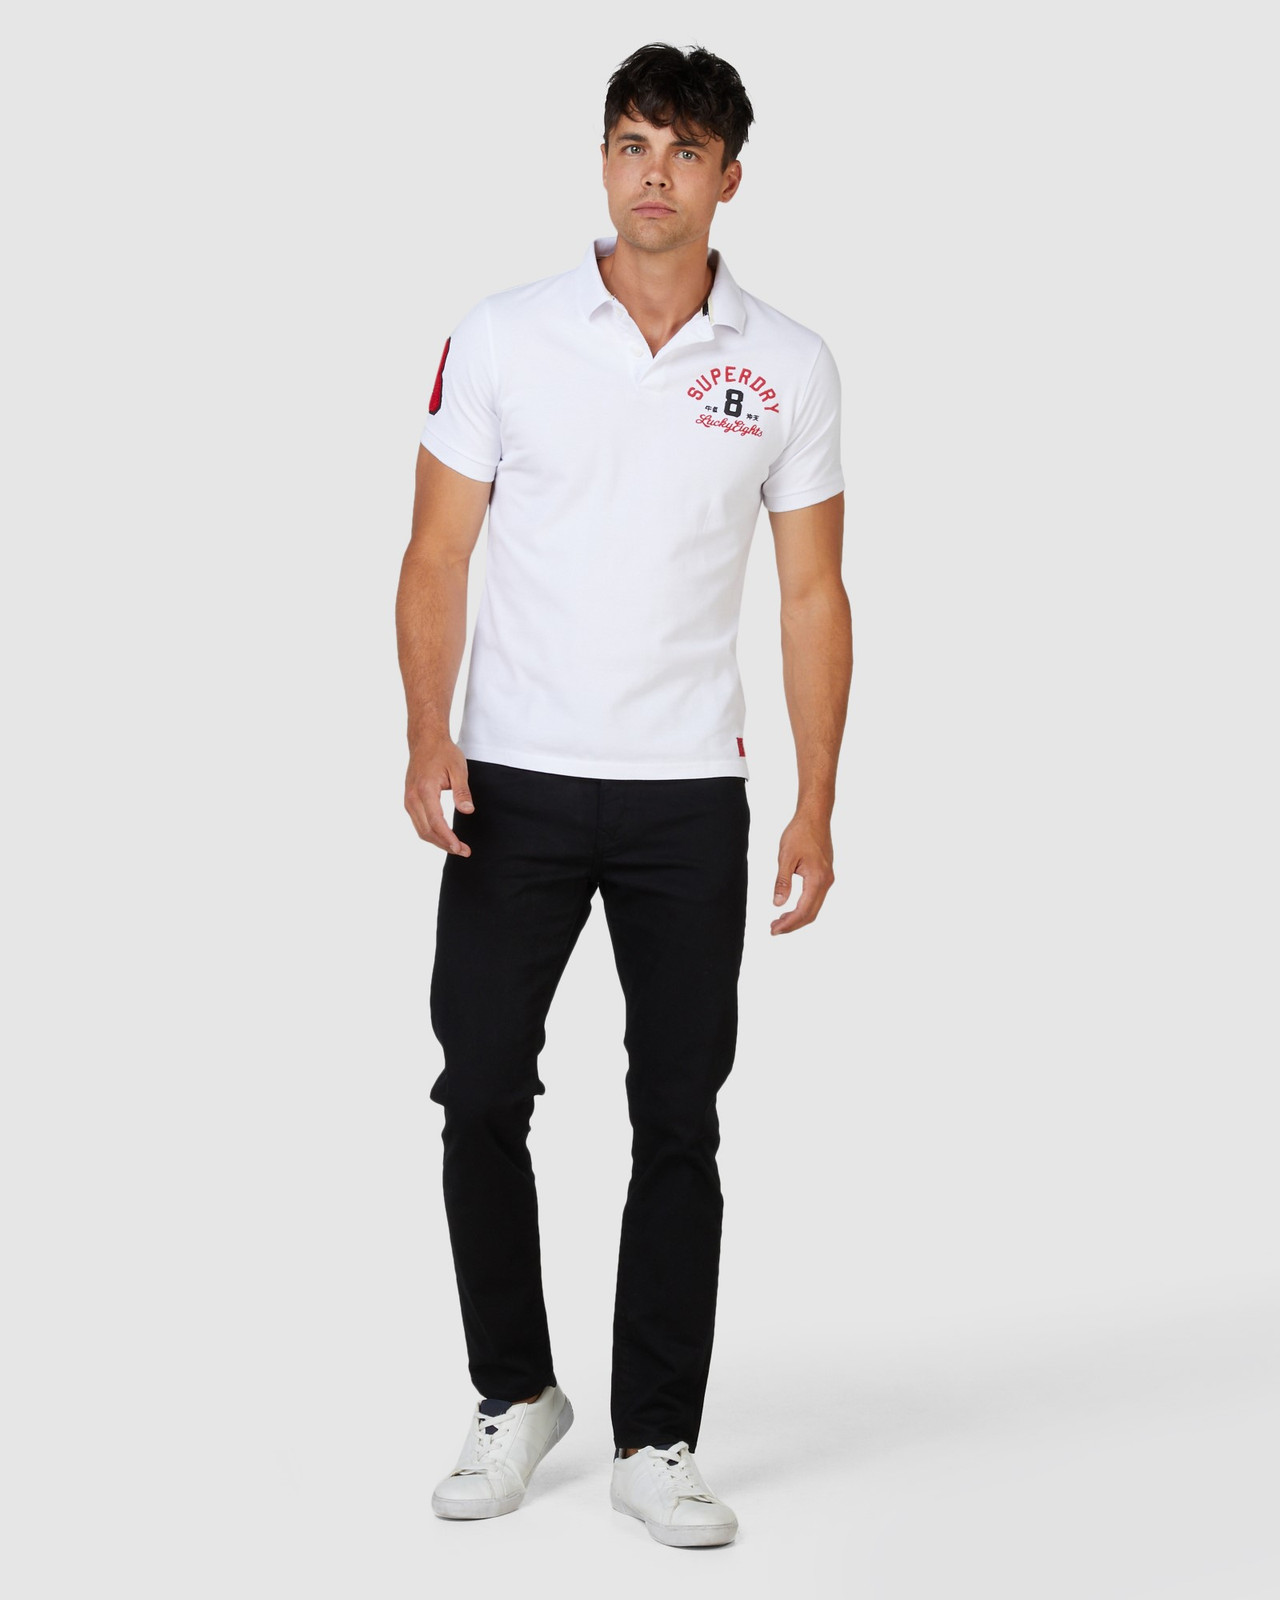 Superdry Mens CNY Superstate Short Sleeve Polo White Printed Polos 1